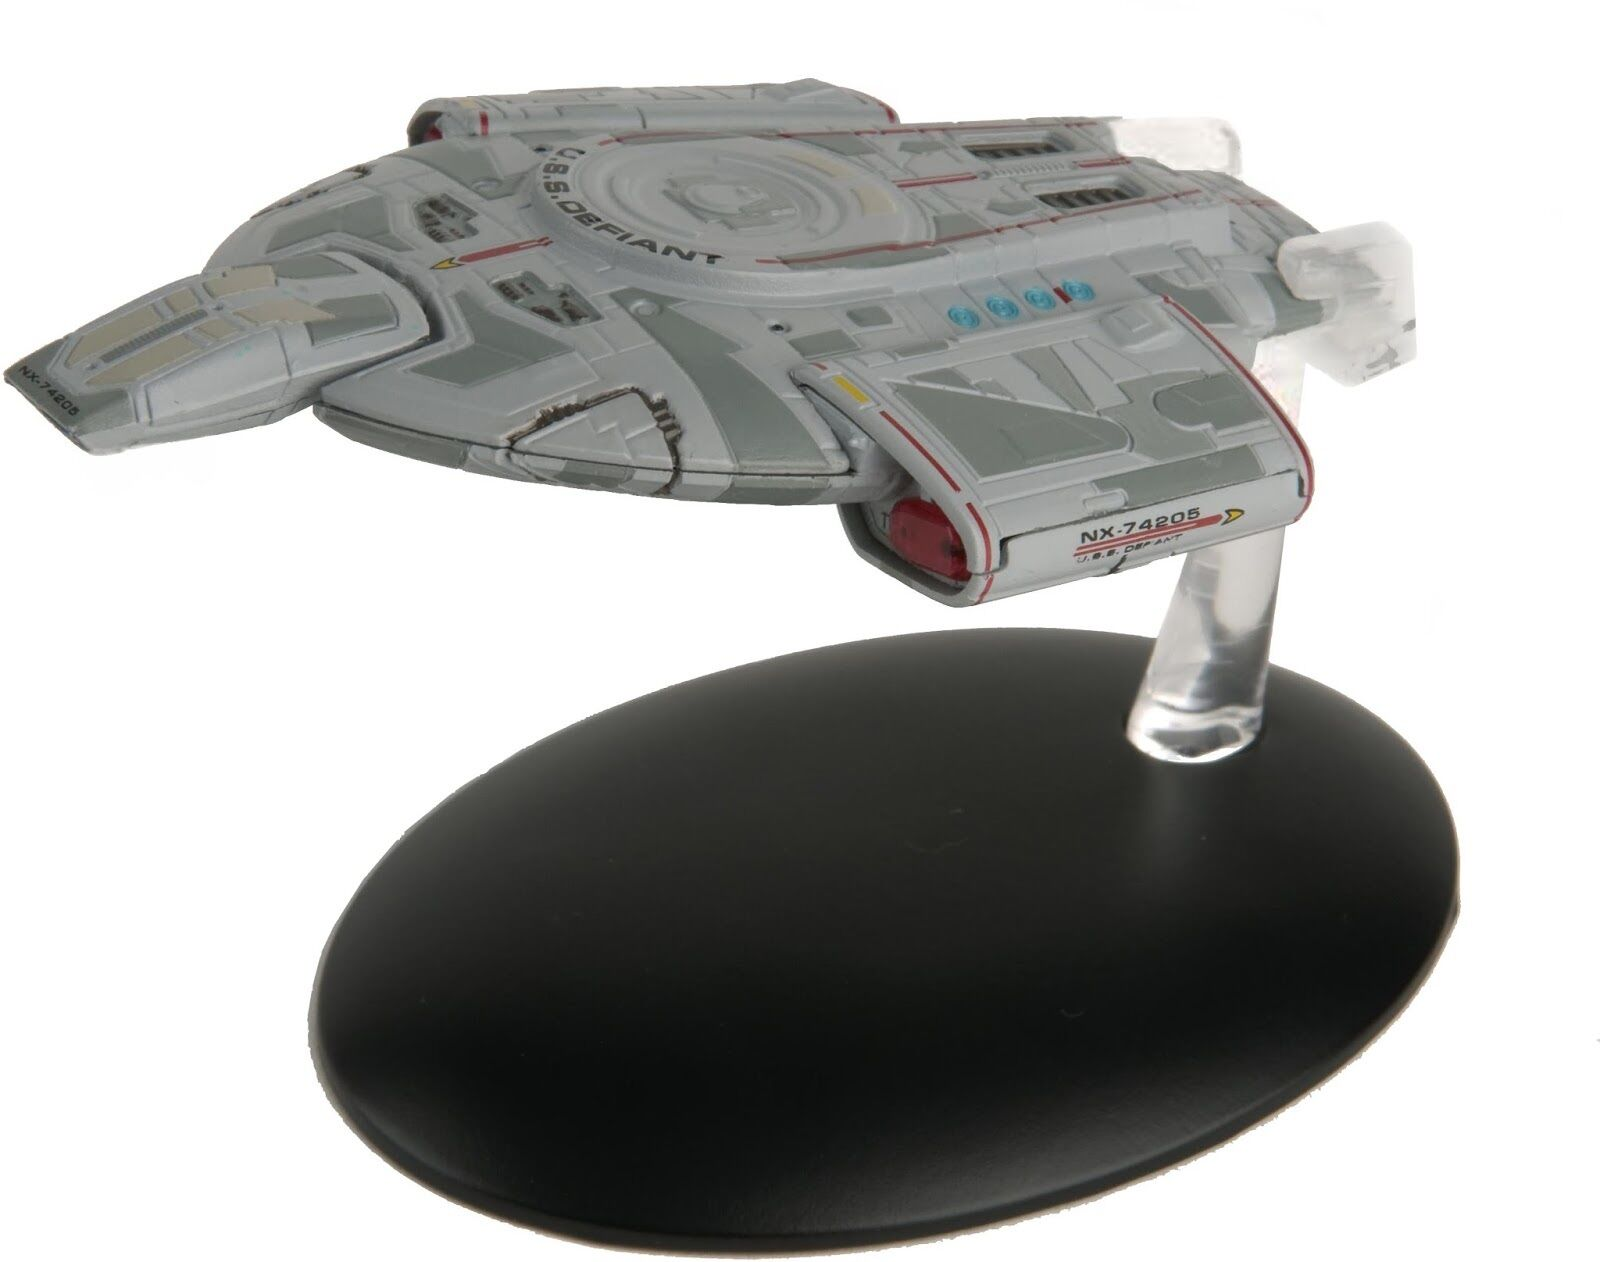 Star Trek USS Defiant NX-74205 with Collectible Magazine  9 by Eaglemoss